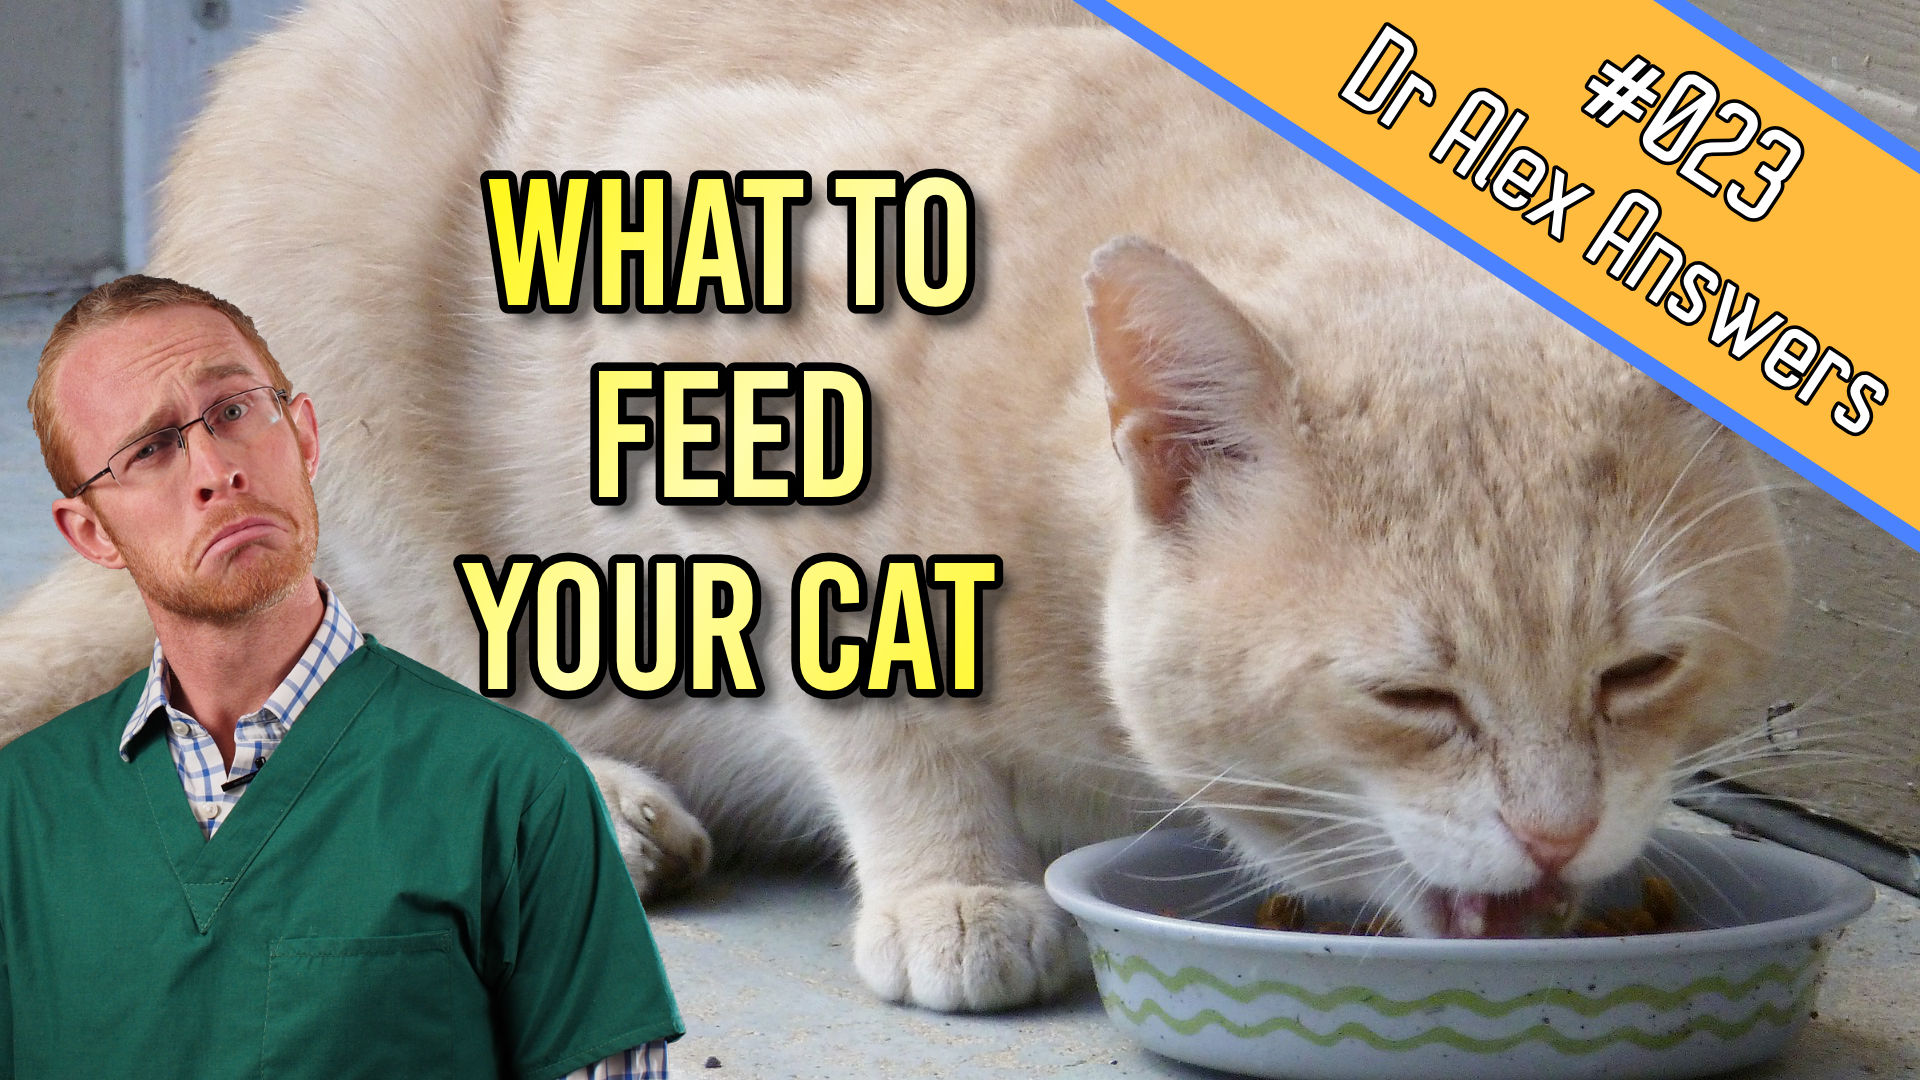 DAA what to feed a cat.jpg